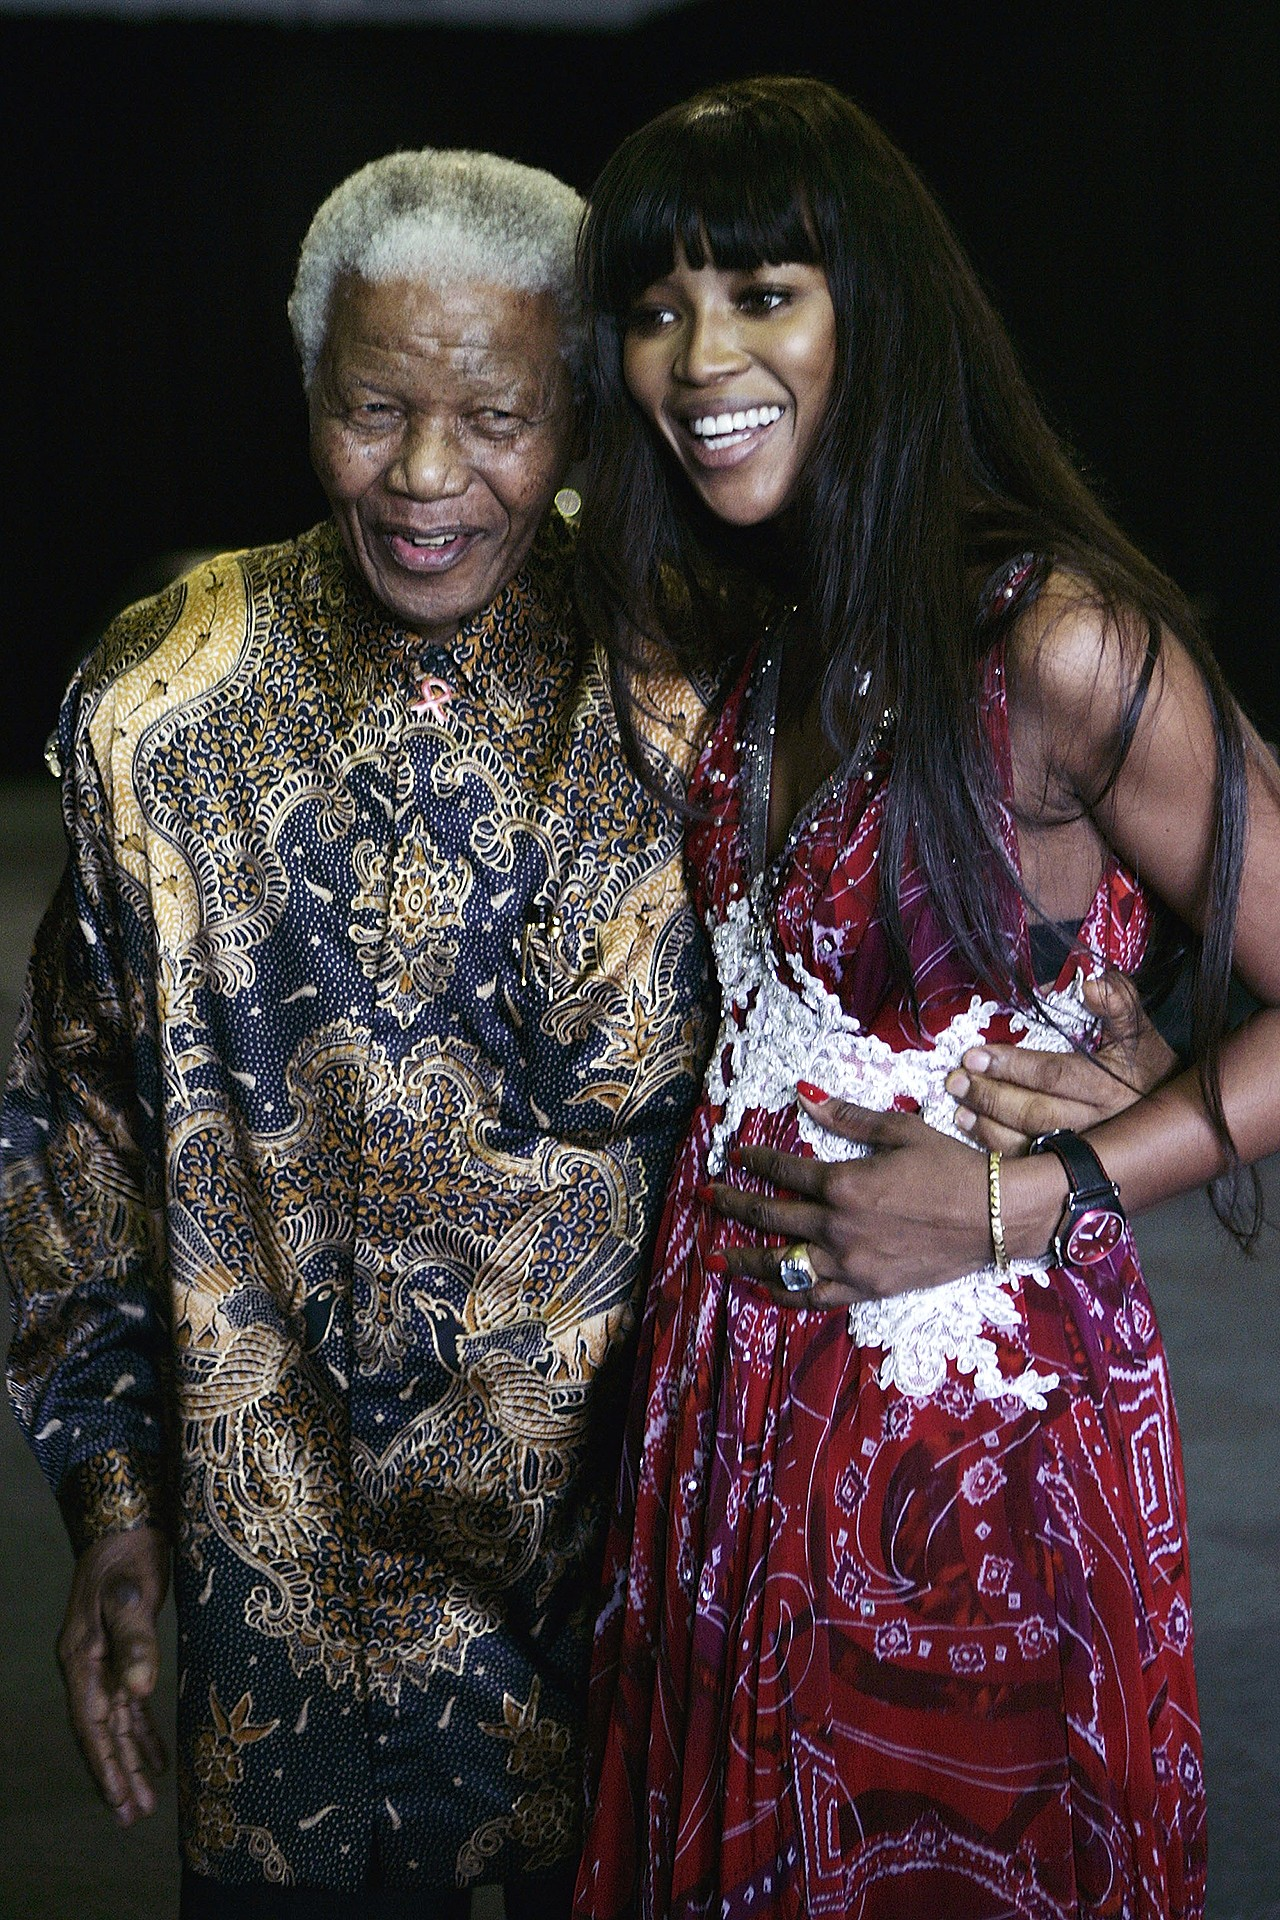 JOHANNESBURG, SOUTH AFRICA - NOVEMBER 30: Nelson Mandela and Supermodel Naomi Campbell at the Press Conference for the 46664 World Aids Day Concert at Gallagher Estate in Gauteng - South Africa, November 30, 2007 (Photo by Michelly Rall/WireImage) (Foto: WireImage)